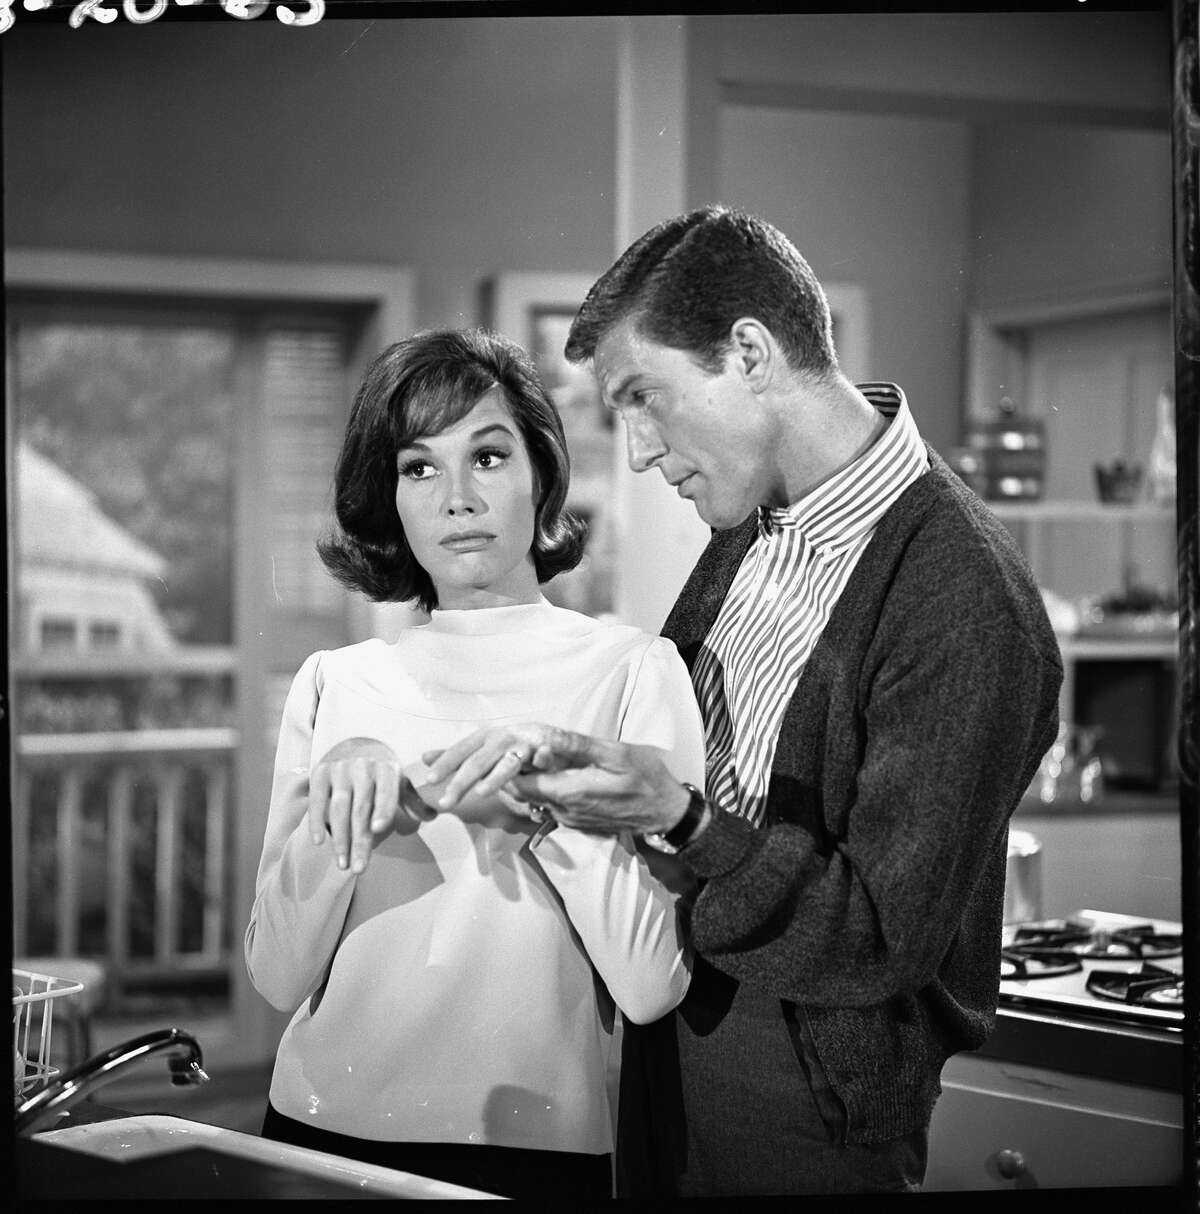 Dick Van Dyke and Mary Tyler Moore, in